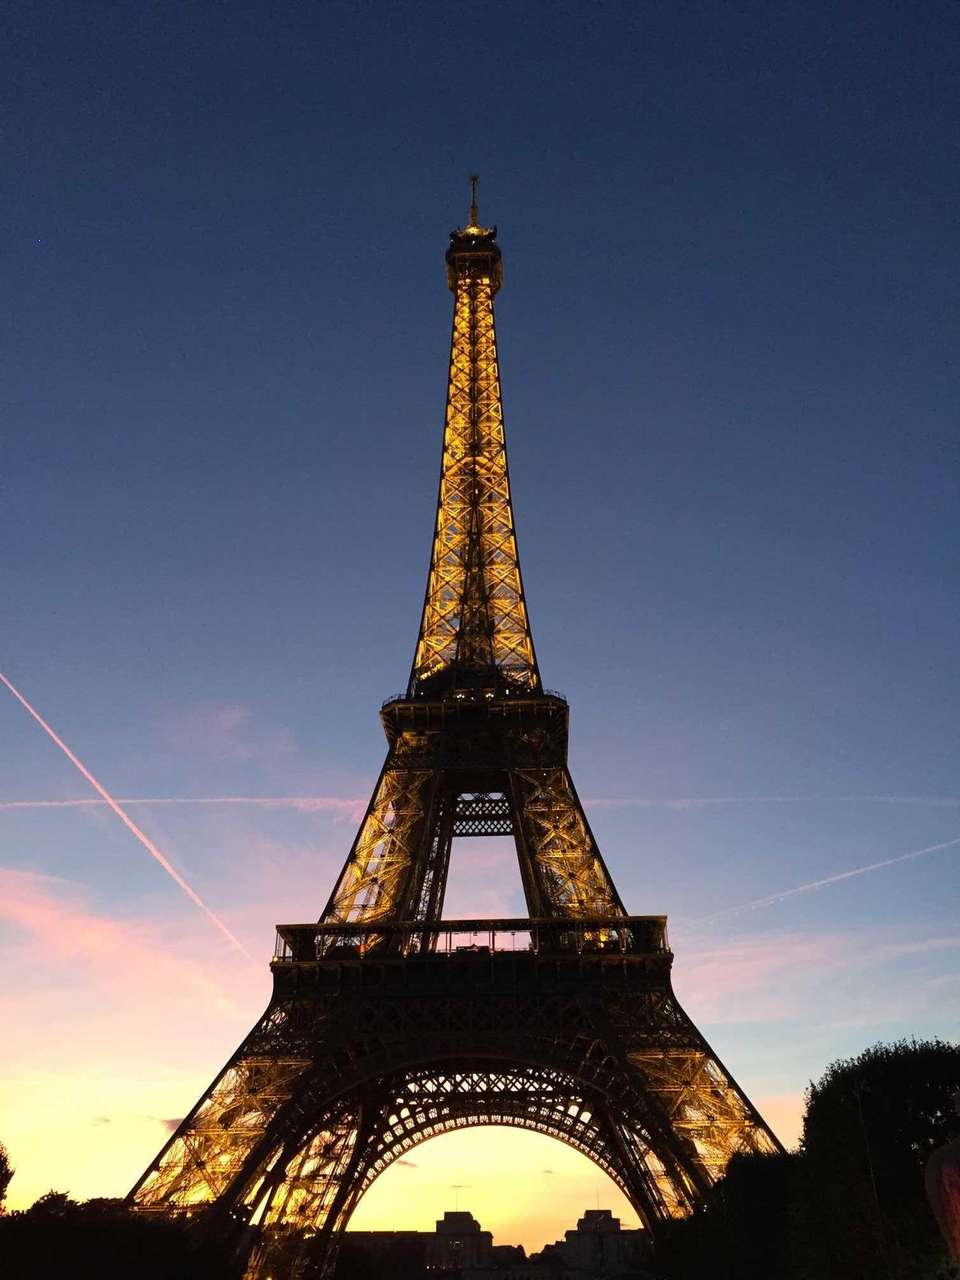 Sunset at the Eiffel Tower on August 5th,